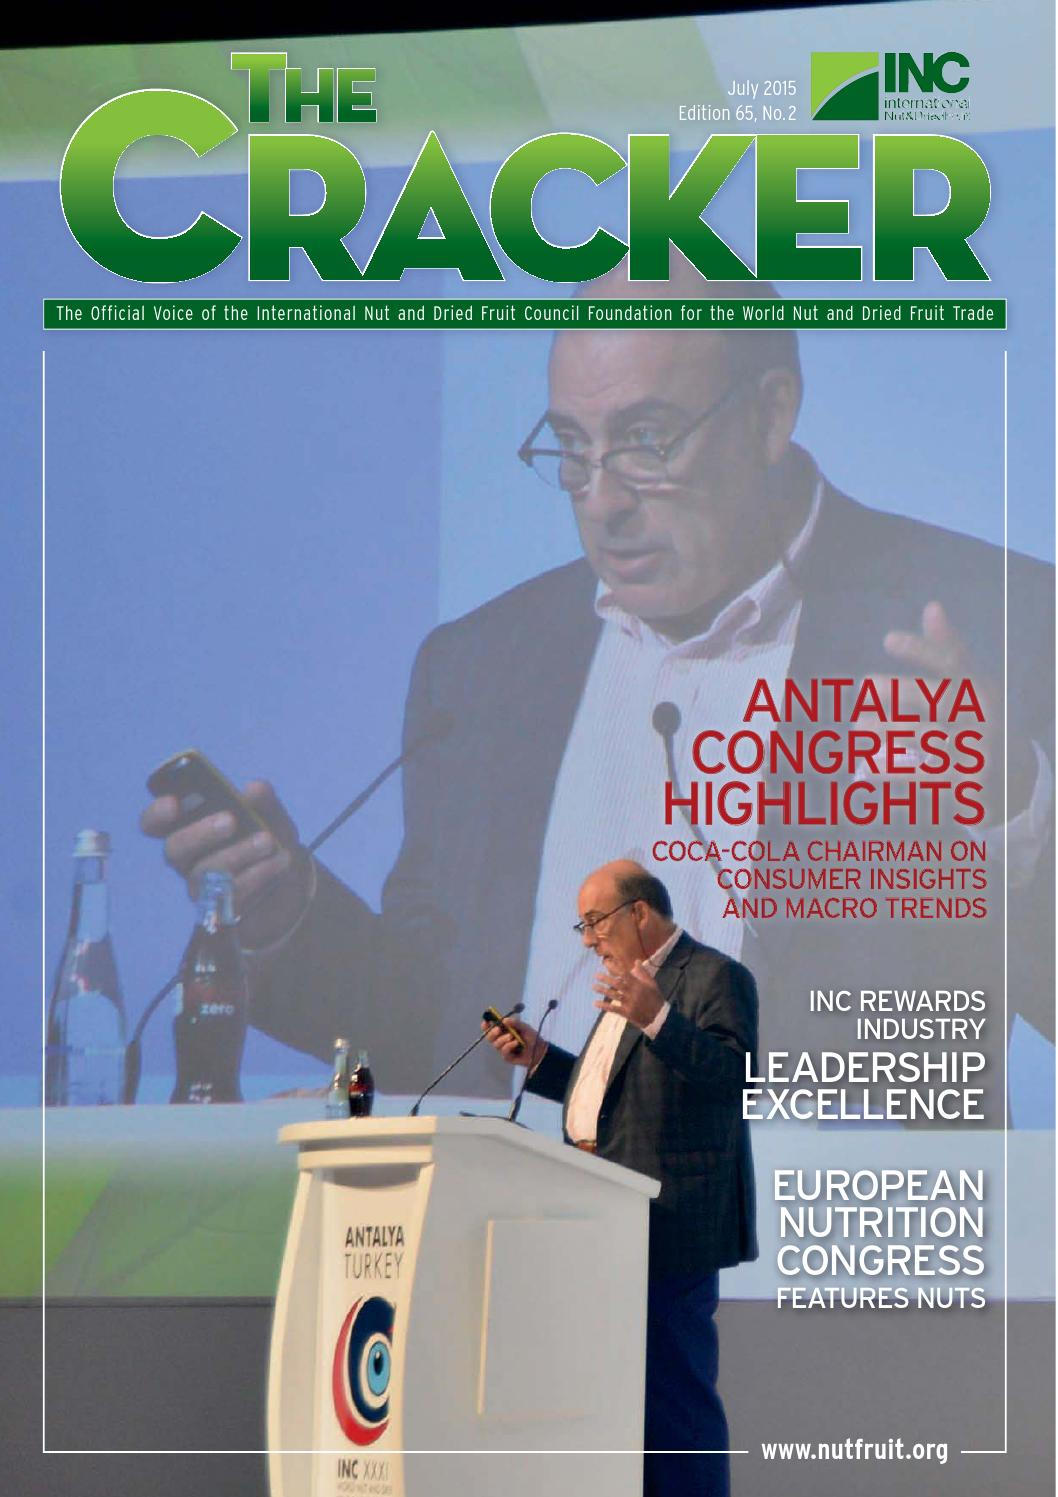 O Sole Mio Cucina Italiana Newberry Fl The Cracker Magazine July 2015 By Inc International Nut Dried